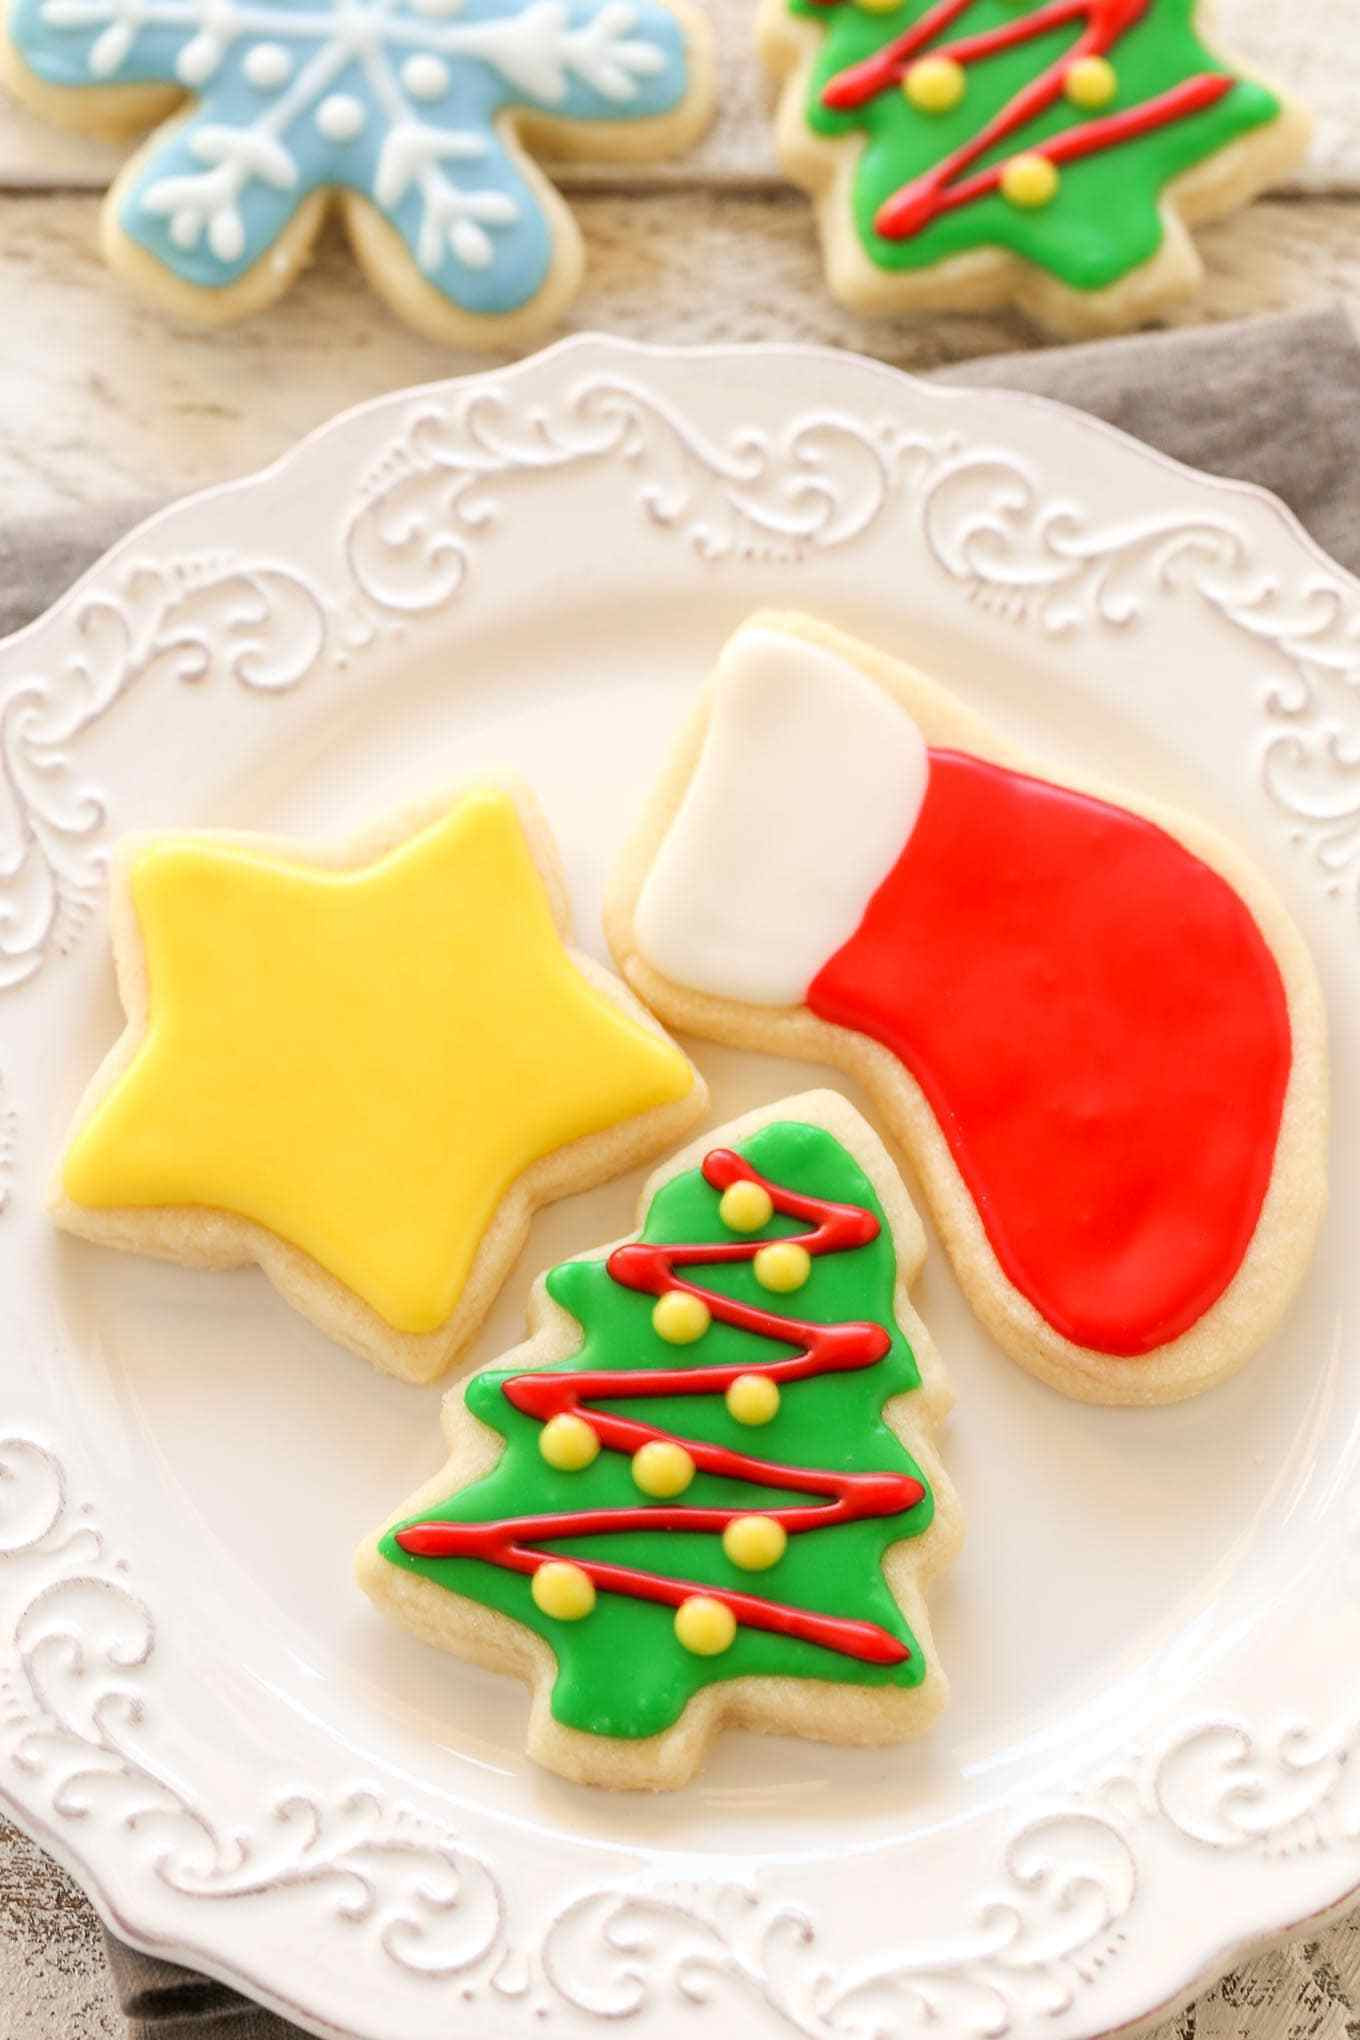 Recipes For Christmas Sugar Cookies  Soft Christmas Cut Out Sugar Cookies Live Well Bake ten